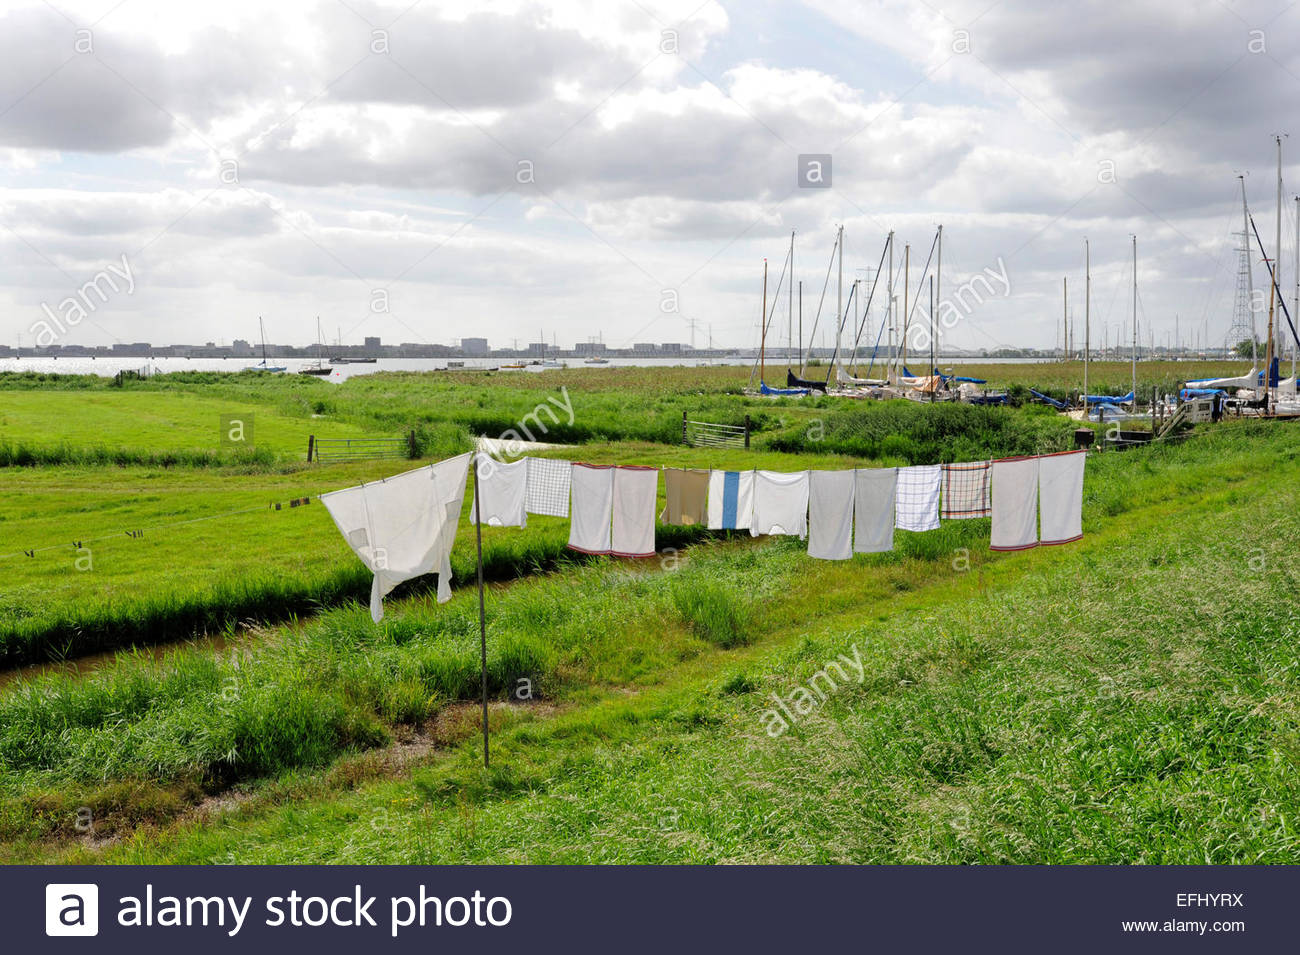 Clothesline on the embankment of the dyke to IJmeer lake, Durgerdam, Amsterdam, Holland, the Netherlands - Stock Image